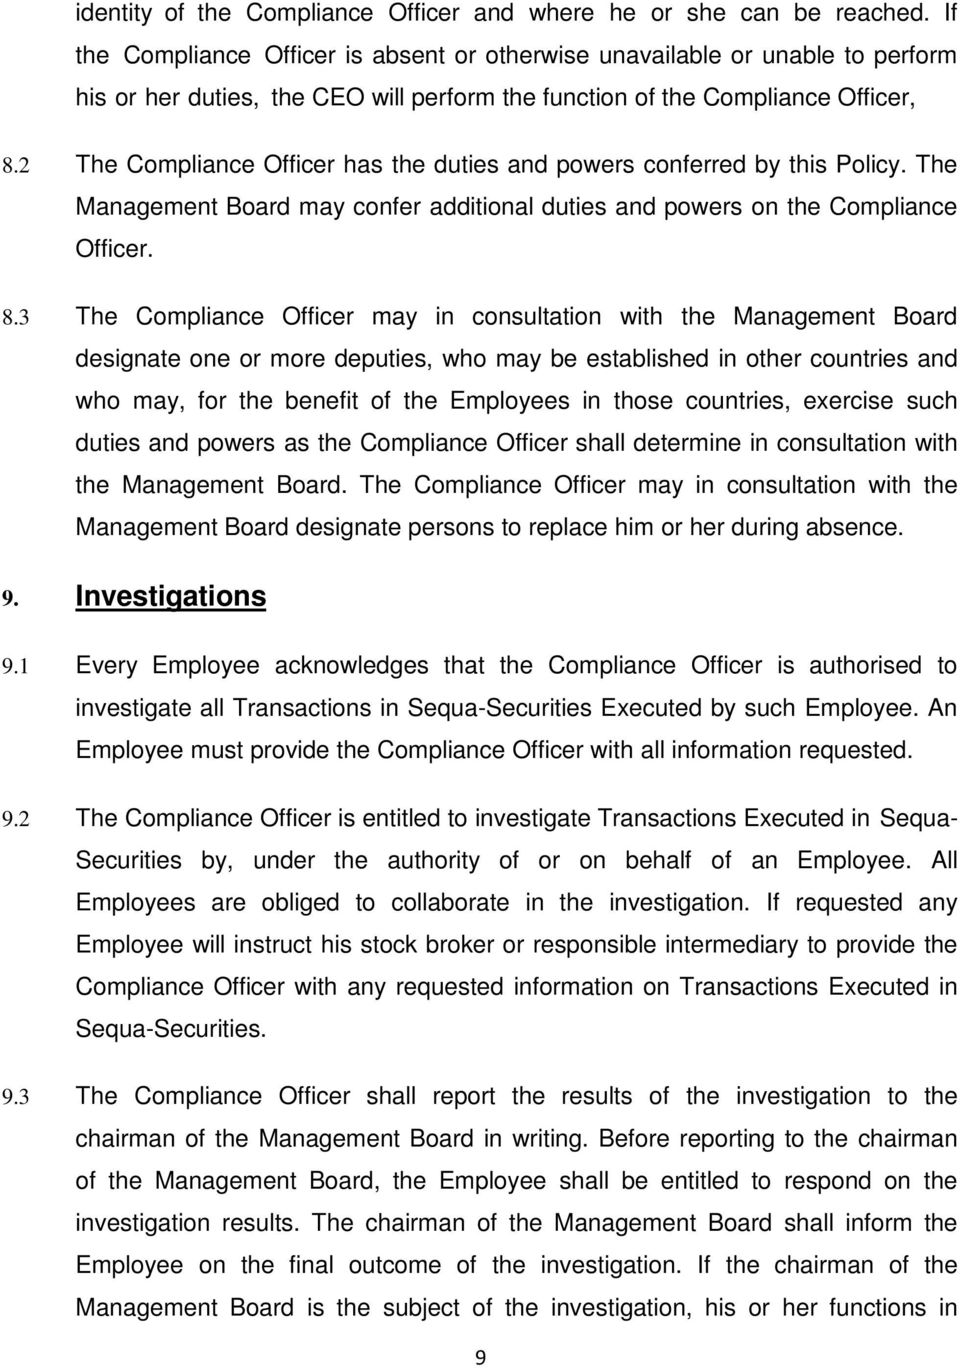 2 The Compliance Officer has the duties and powers conferred by this Policy. The Management Board may confer additional duties and powers on the Compliance Officer. 8.